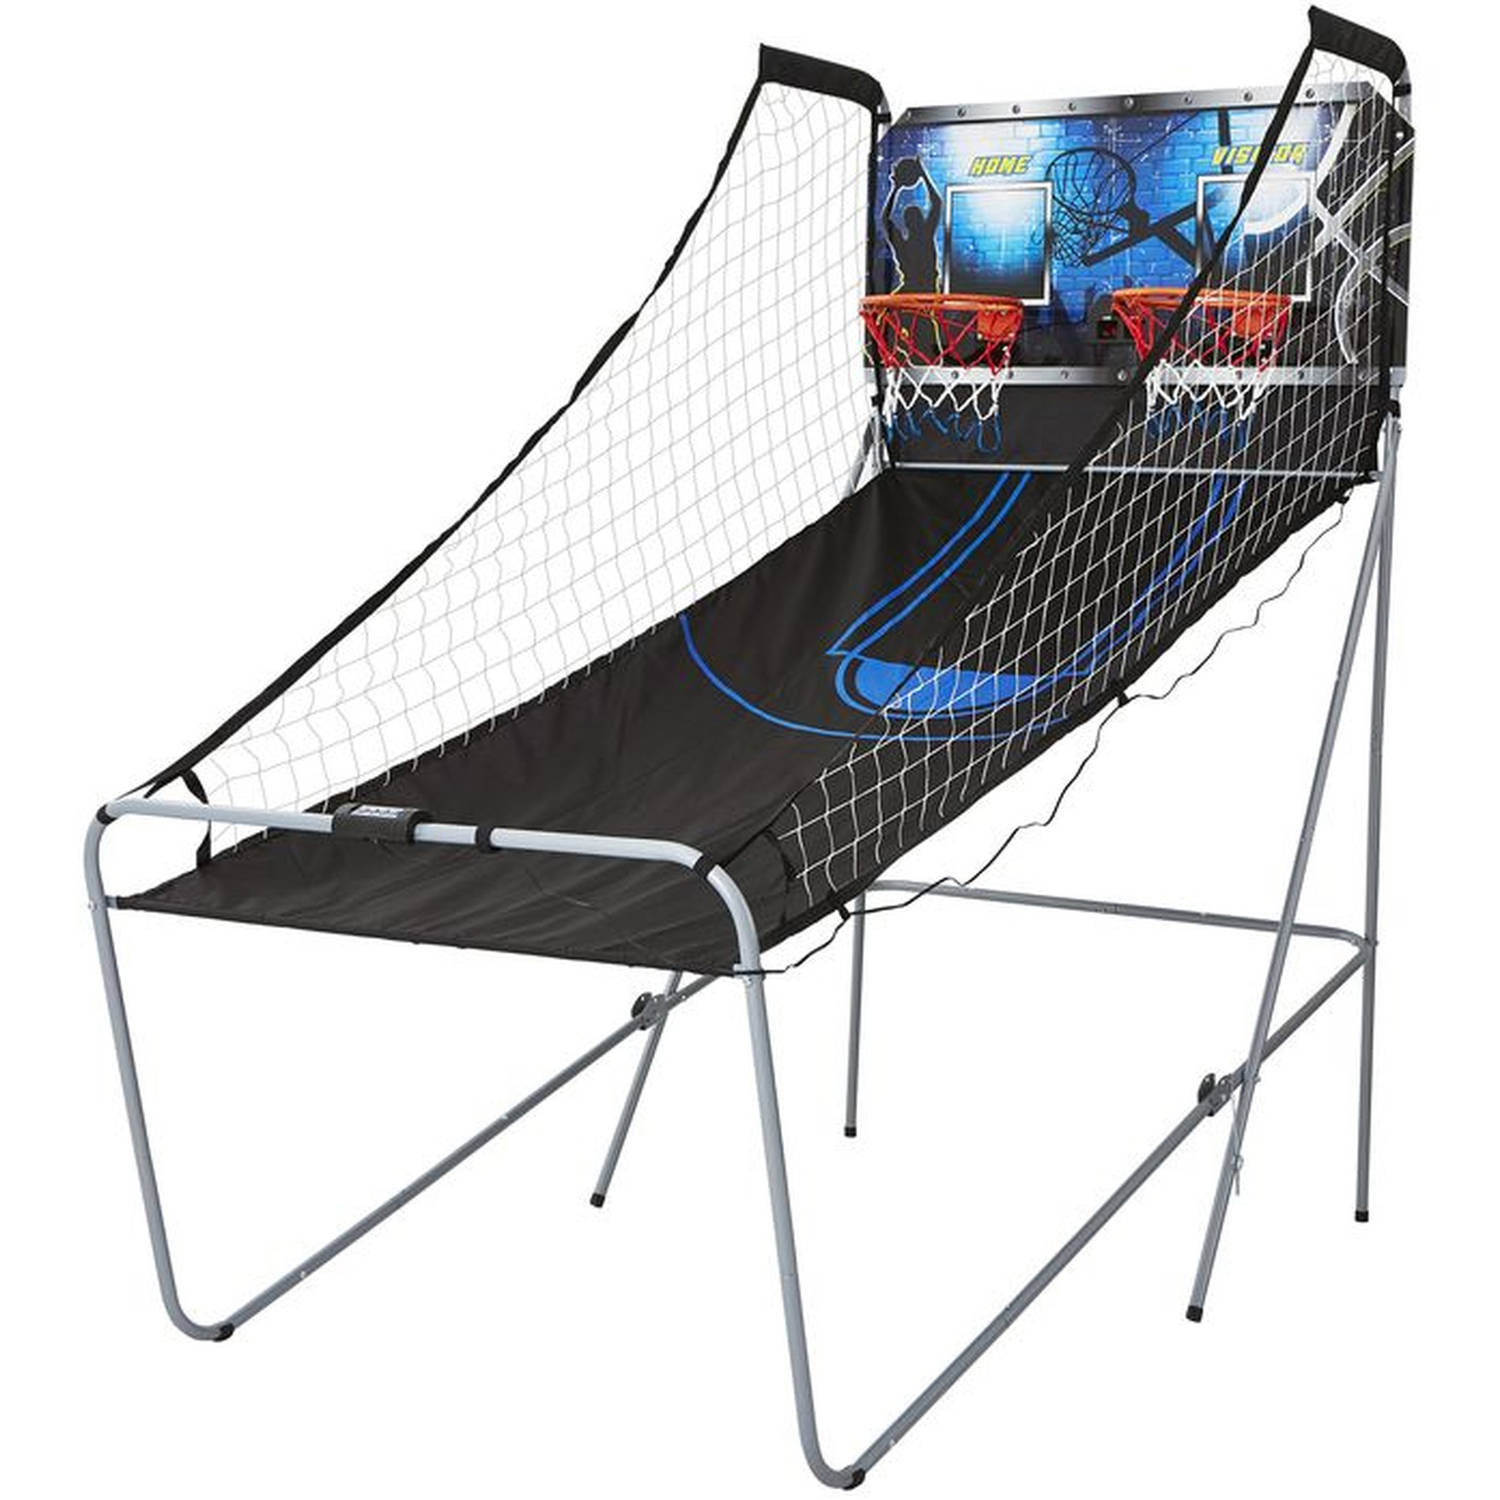 MD Sports 2-Player Arcade Basketball Game with 8 Game Options, All accessories are included, Black/Blue